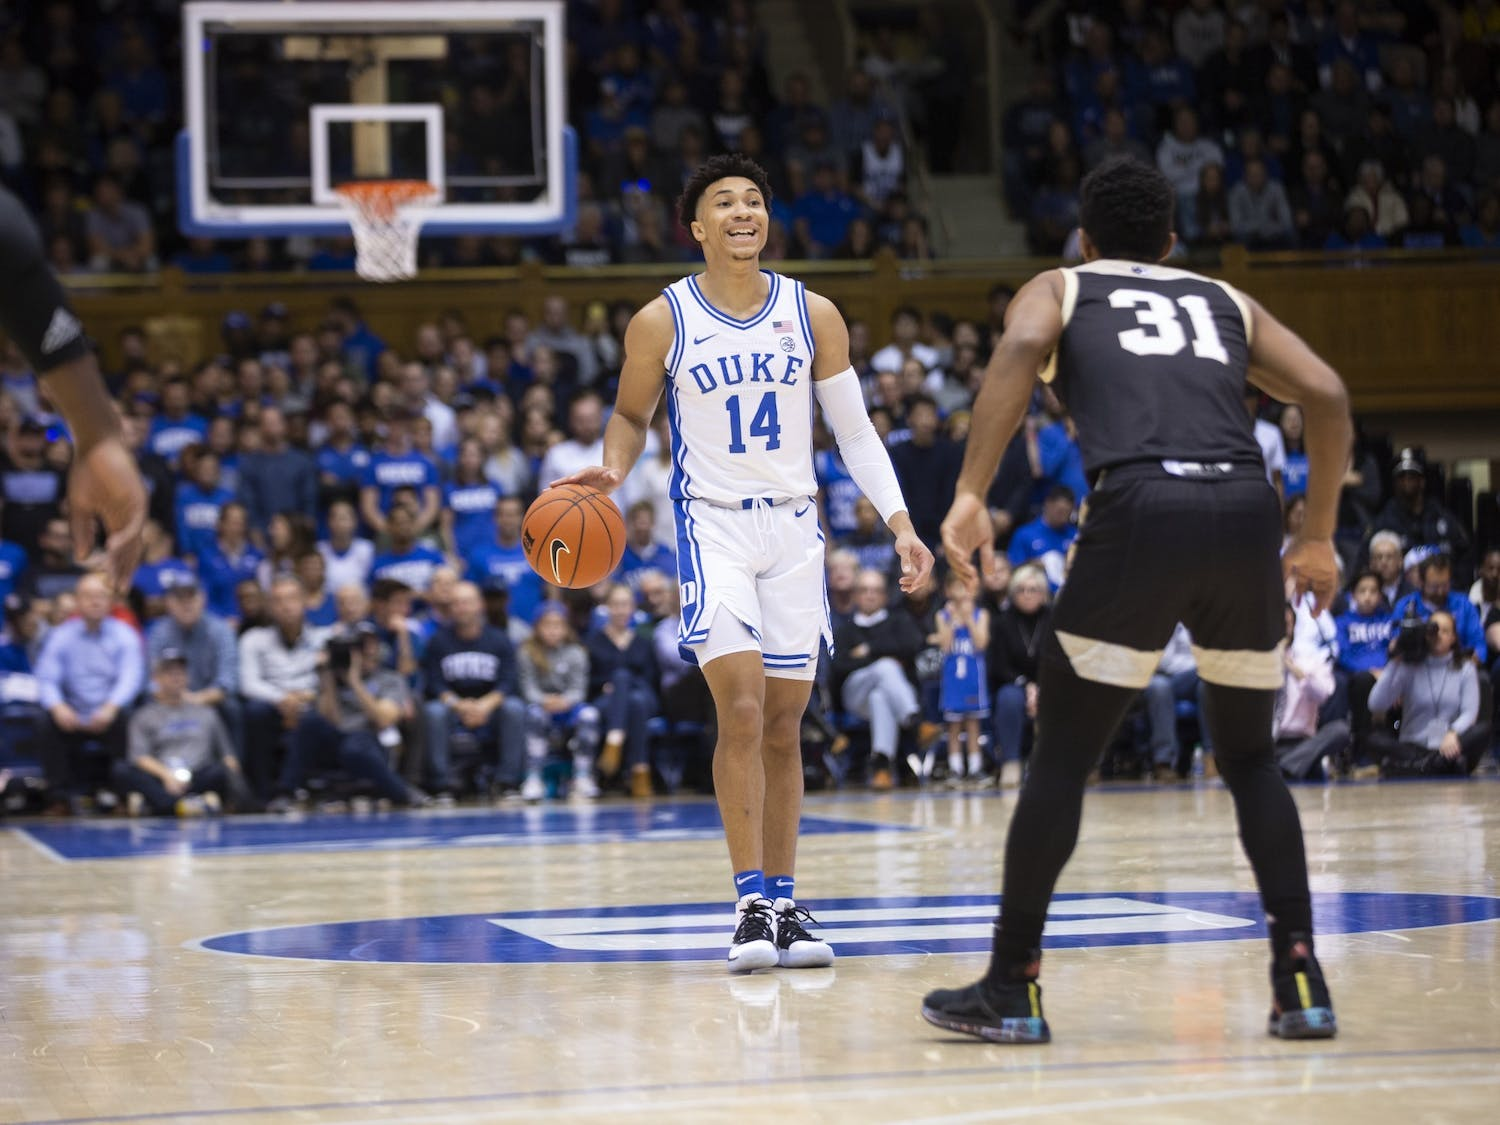 Duke's junior guard Jordan Goldwire (14) dribbles the ball during the game against Wofford in Cameron Indoor Stadium on Thursday, Dec. 19, 2019. Duke beat Wofford 86-57. Photo by Charles York, courtesy of The Chronicle.